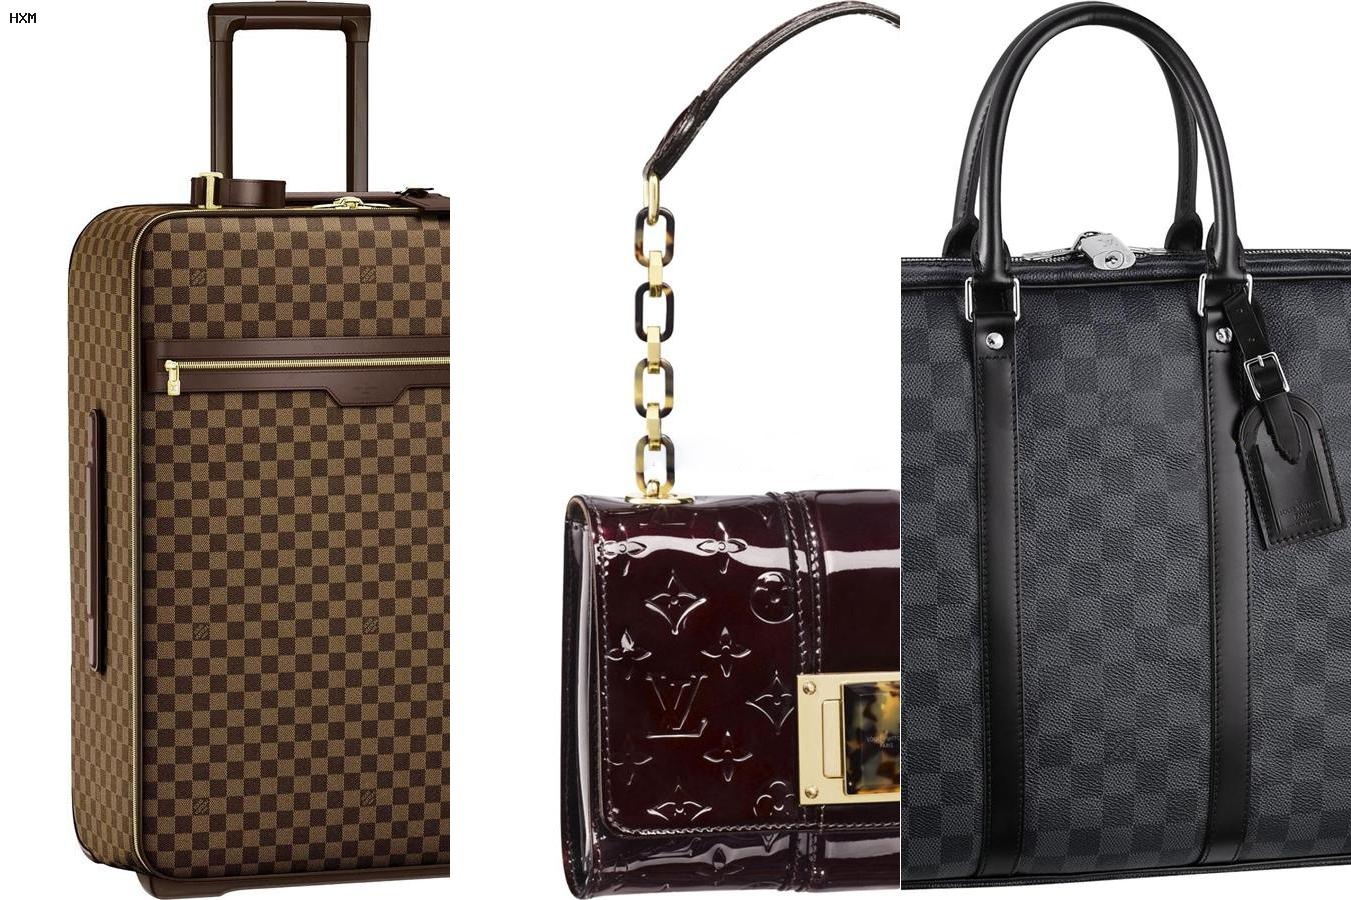 comment nettoyer le cuir d un sac louis vuitton